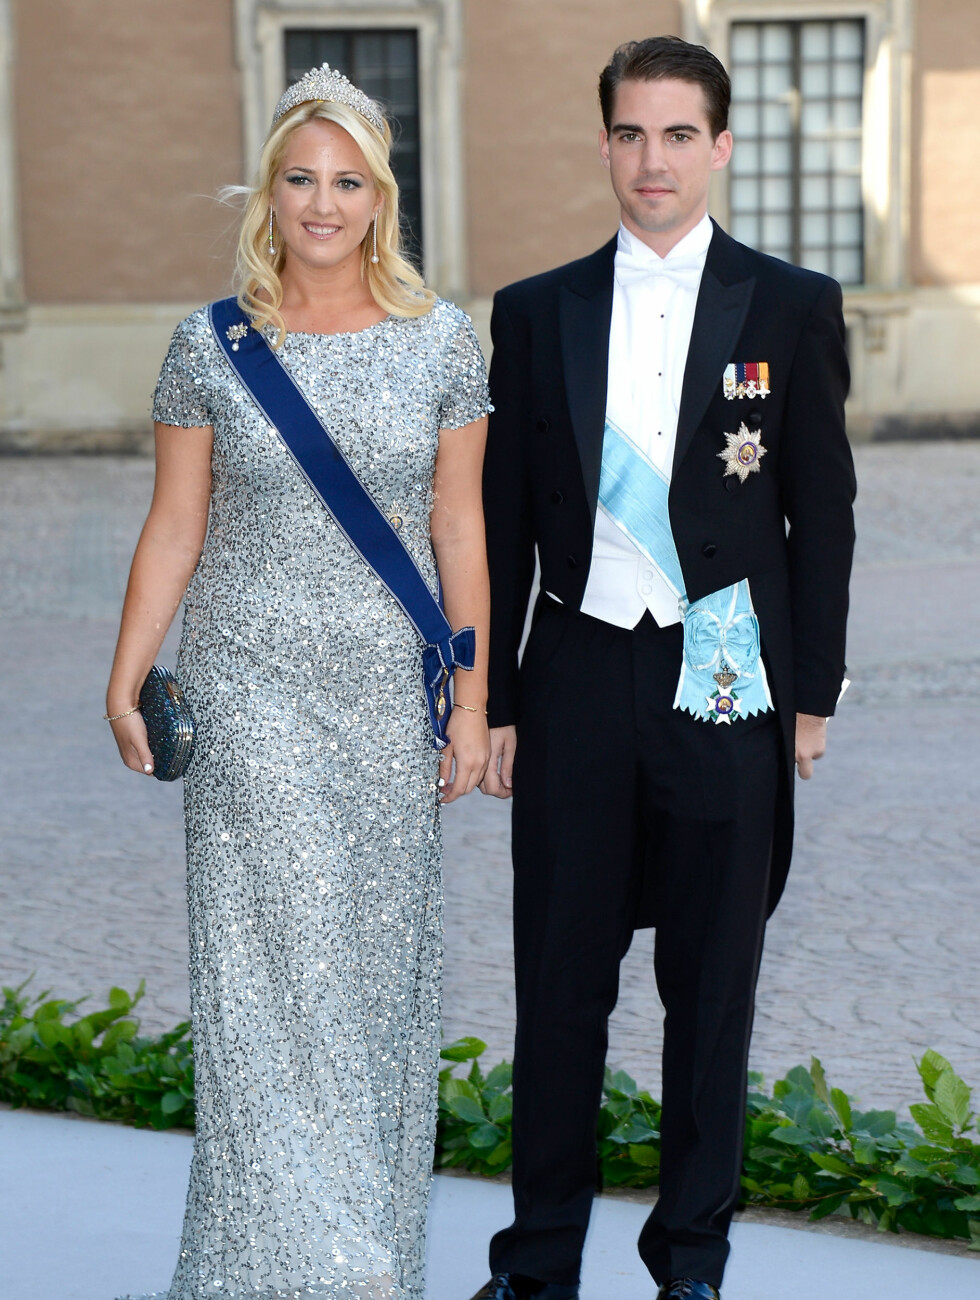 GLITRENDE: Prinsesse Theodora og prins Philippos av Hellas. Foto: All Over Press